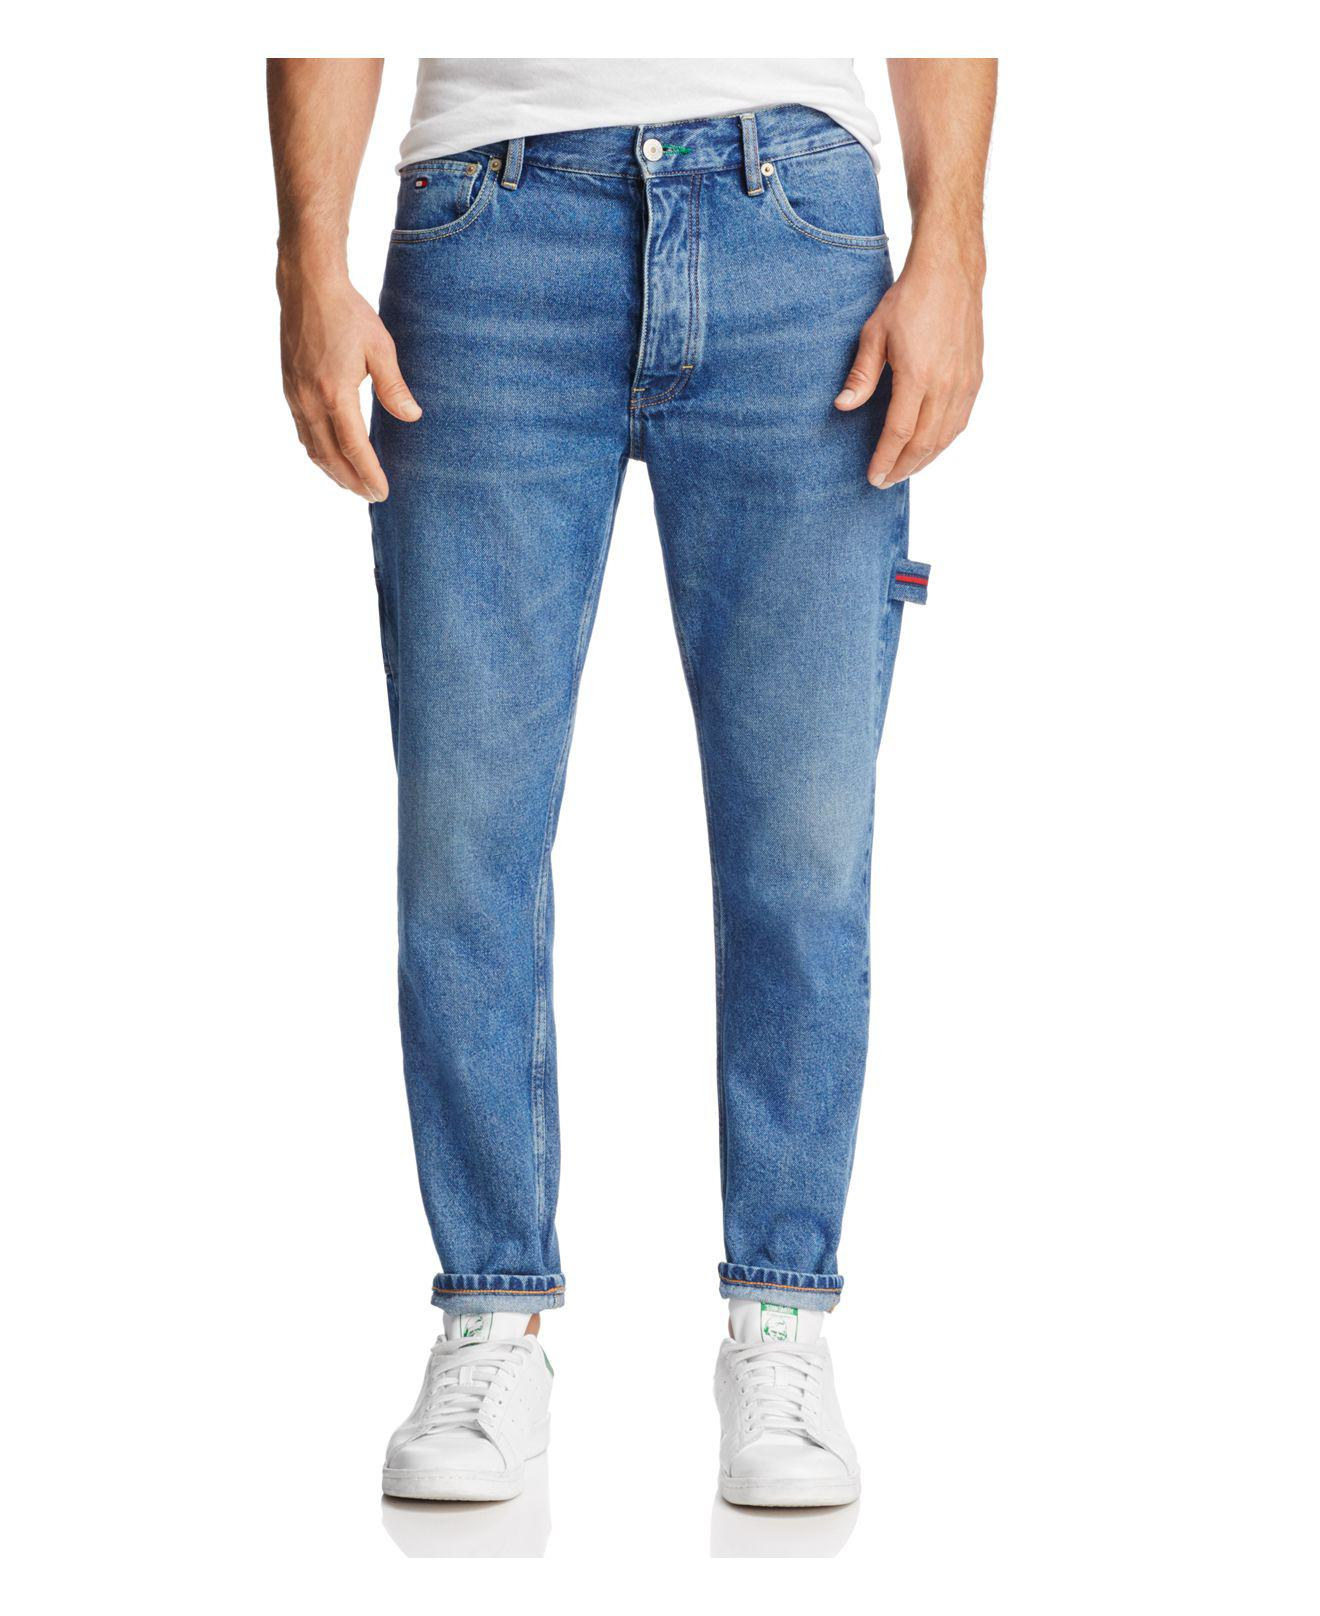 Lyst - Tommy Hilfiger Tapered Fit Carpenter Jeans In Dark Wash in ... 4286e472dc